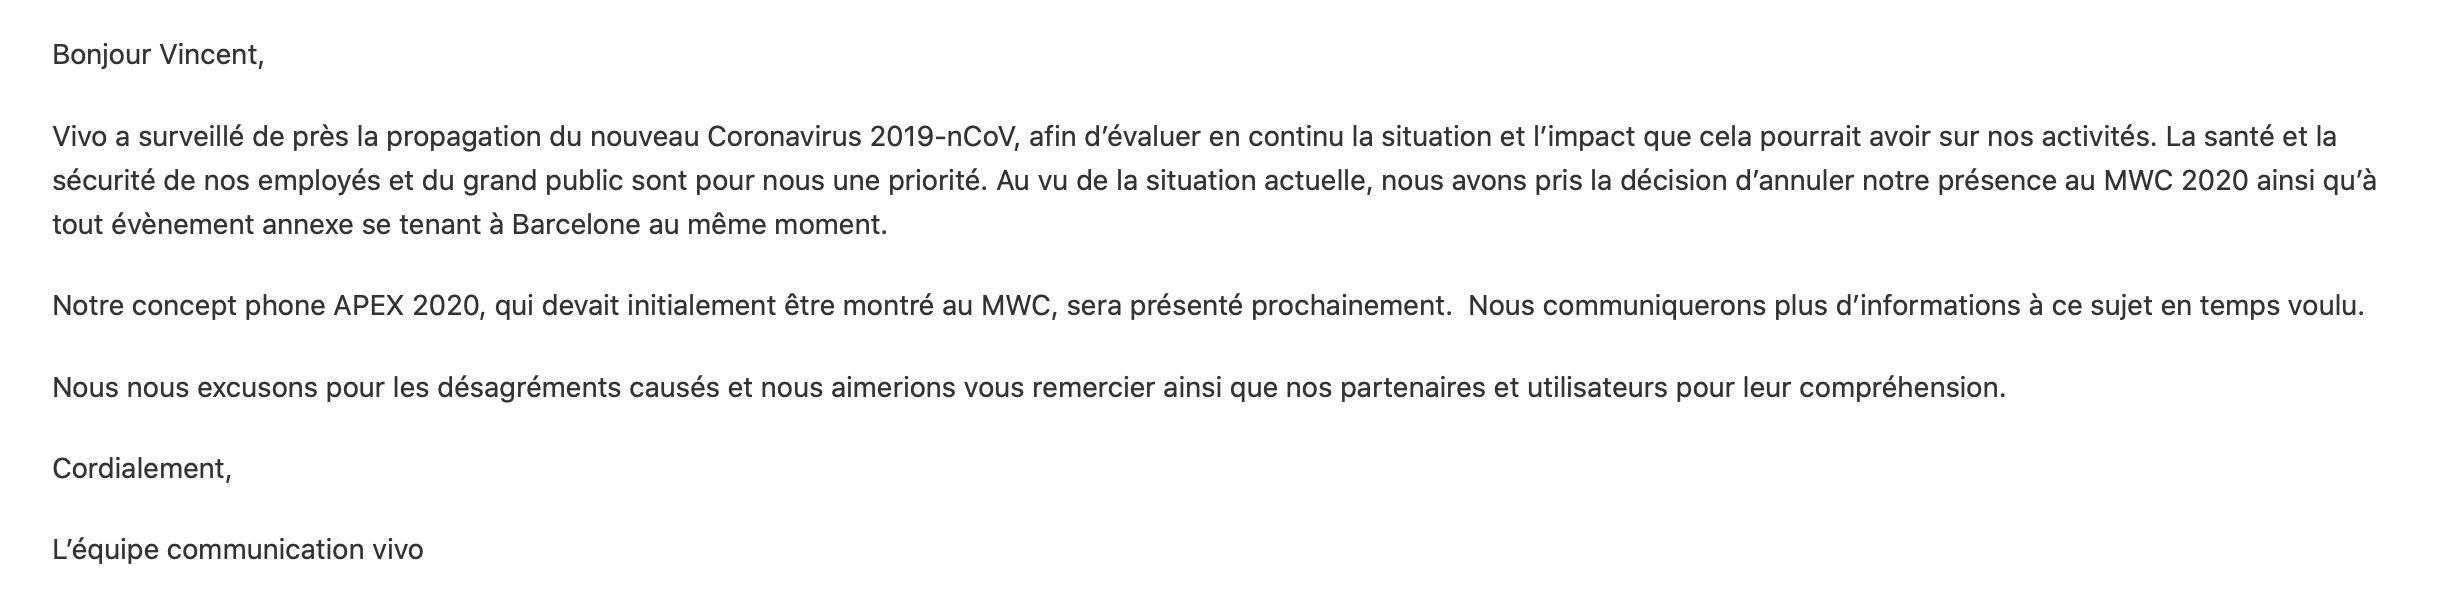 Annulation Vivo MWC